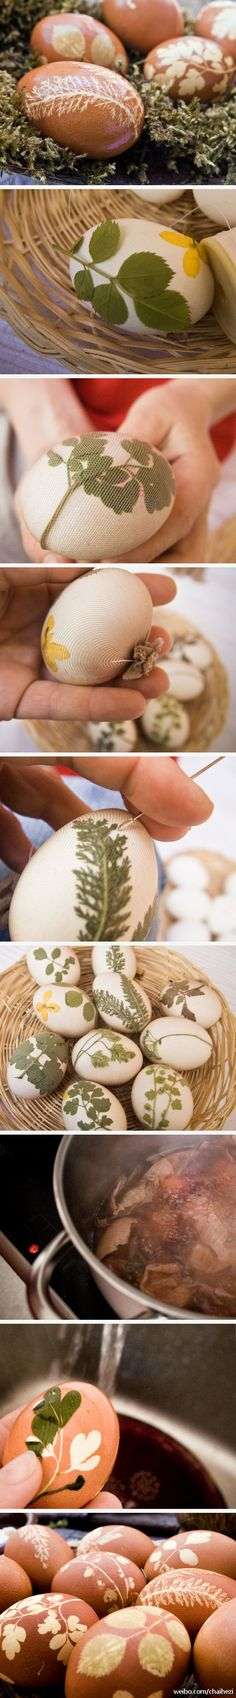 All natural egg decorating tips. No dyes needed.